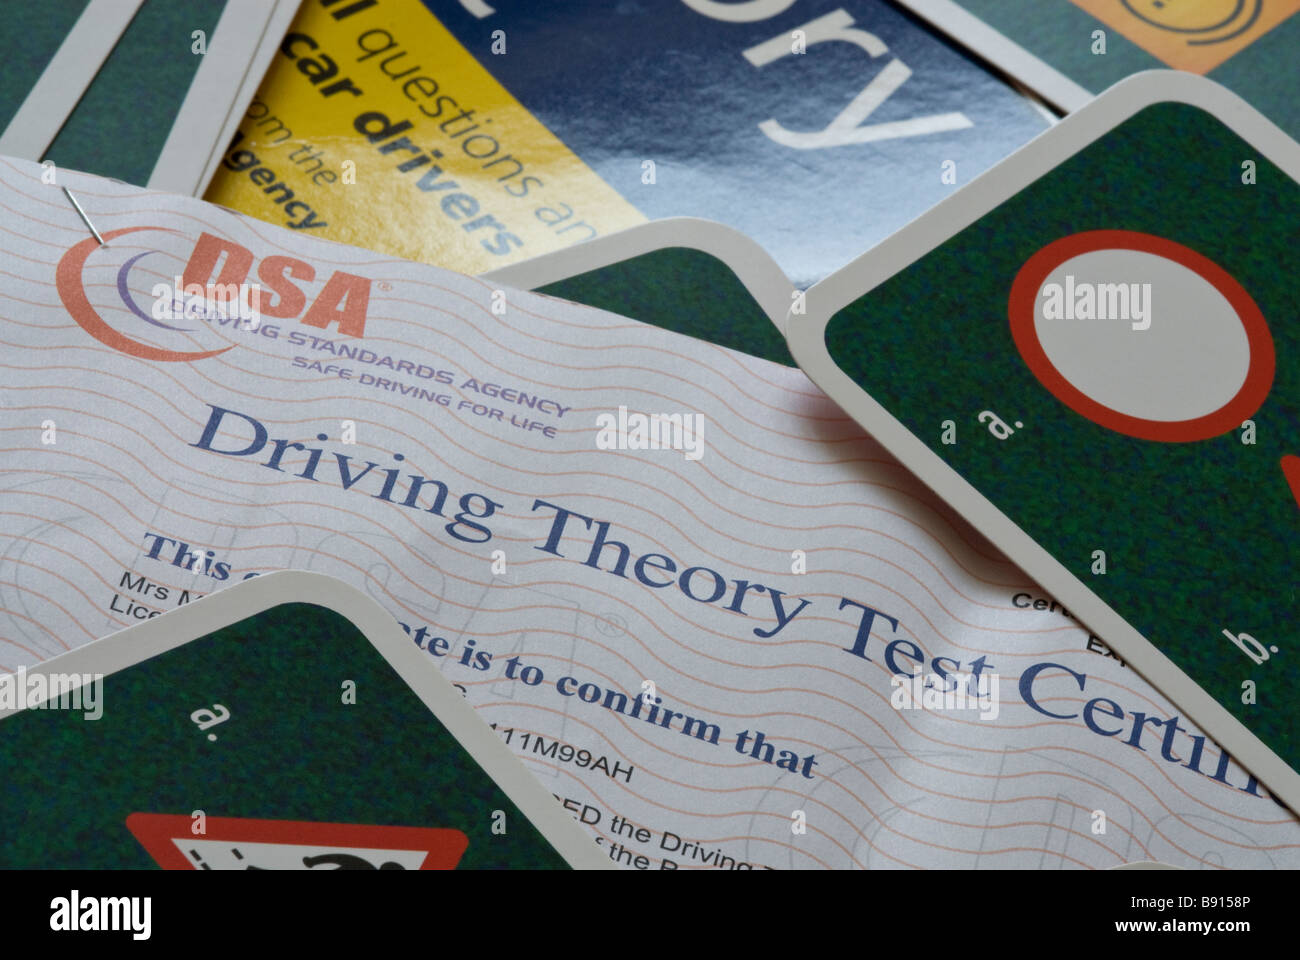 Driving Theory Test - Stock Image